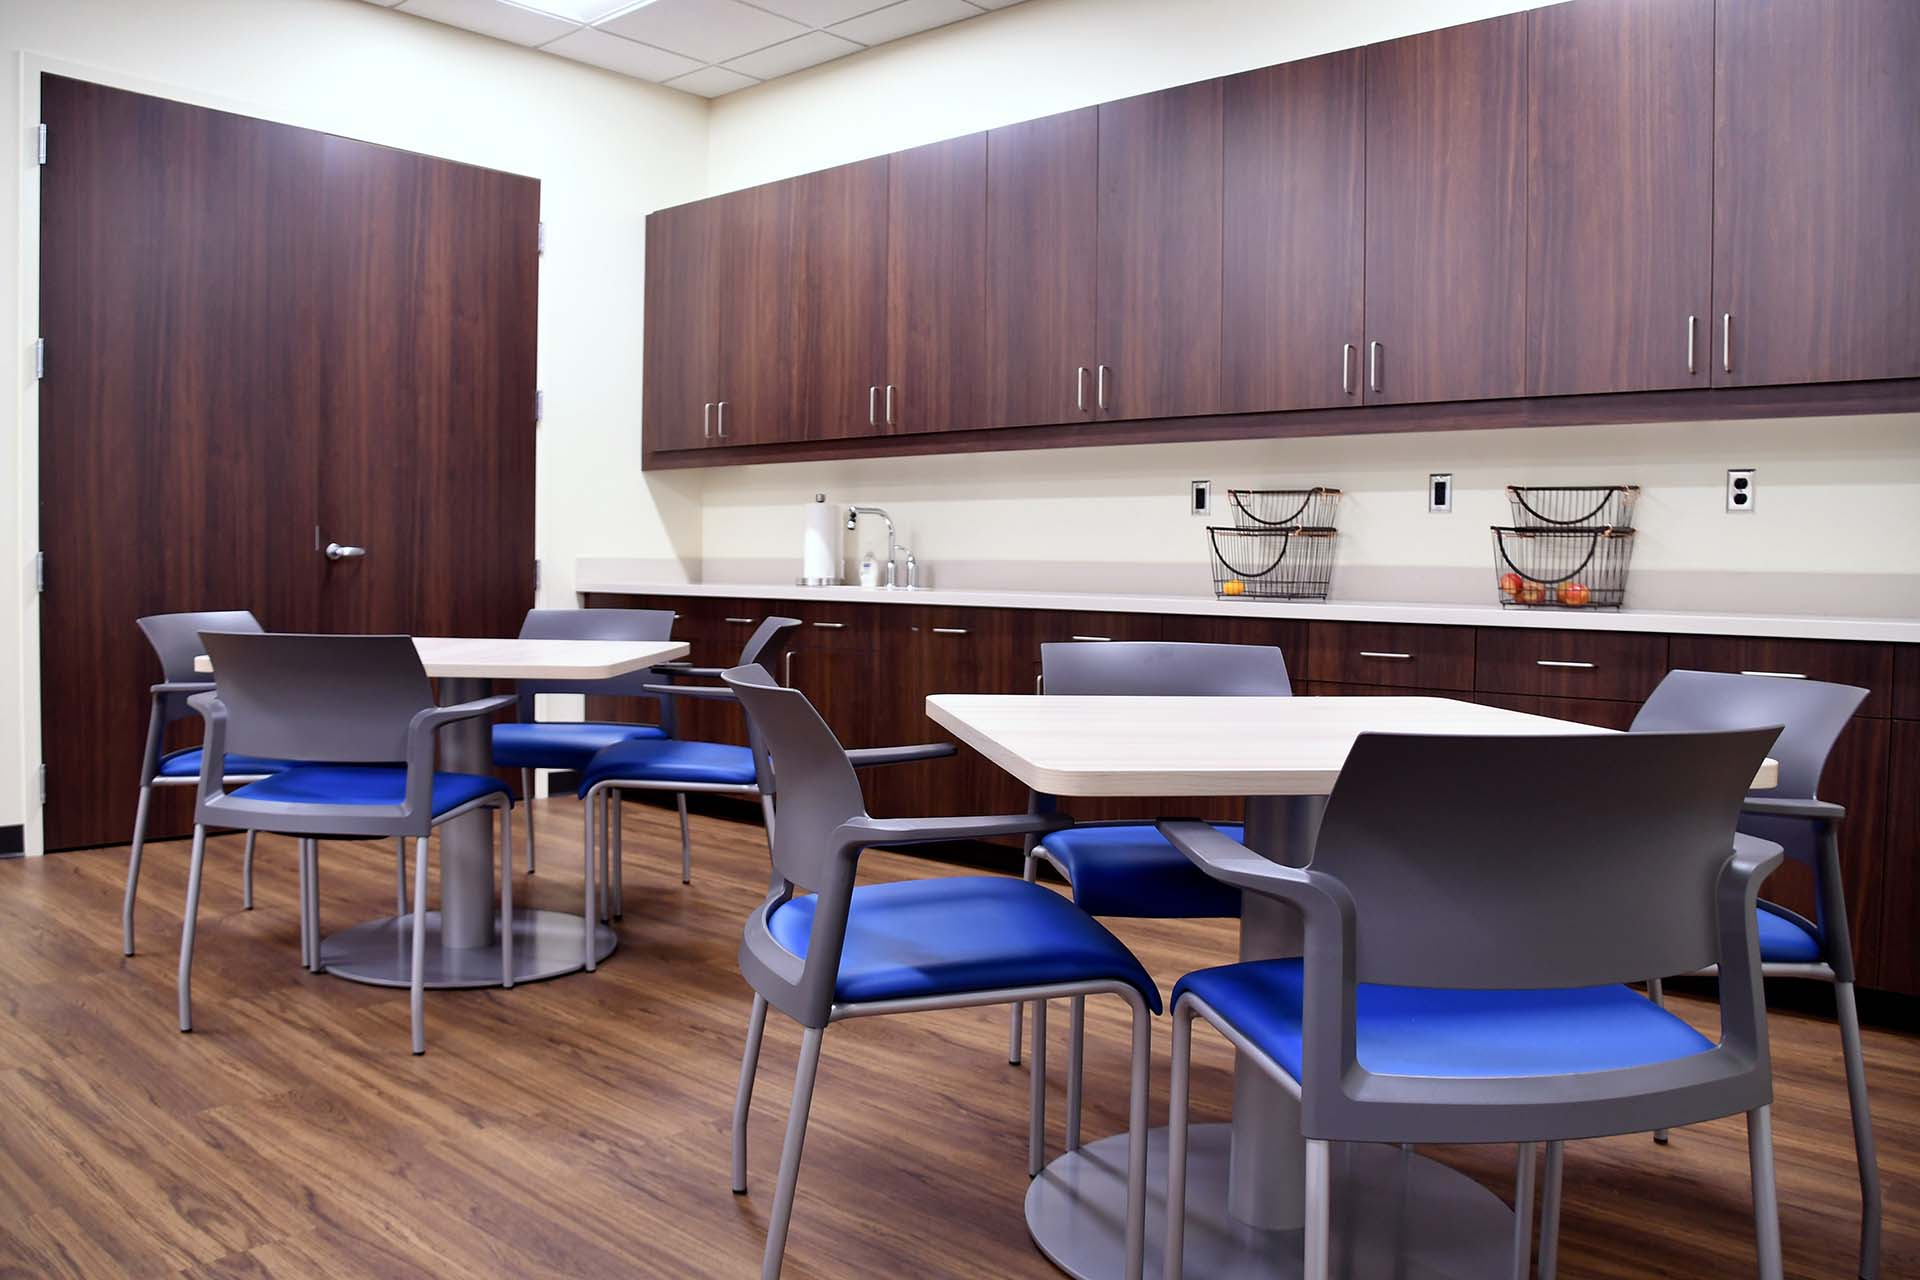 Why is cleanliness important in the workplace?